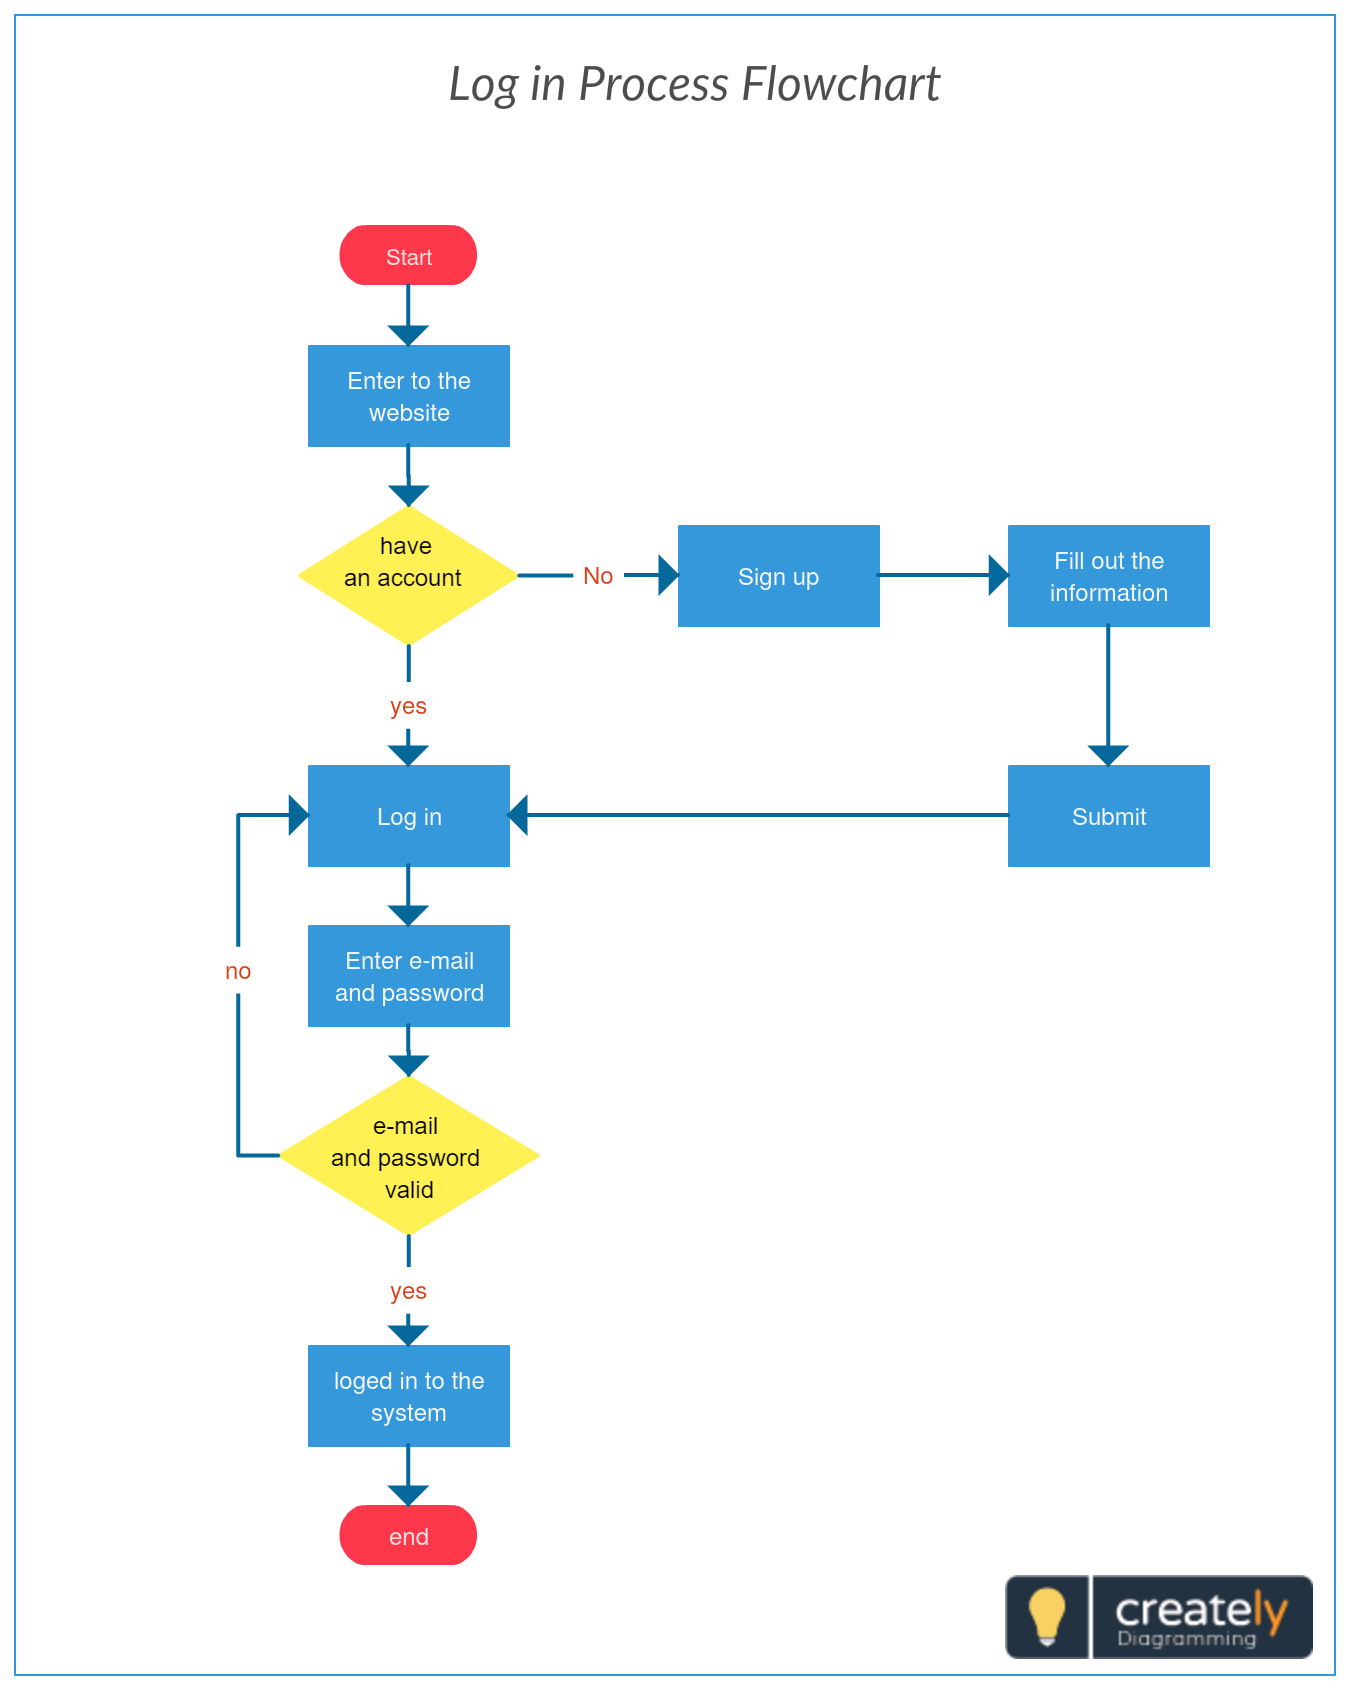 web application process flow diagram dodge electronic power steering log in flowchart to plan on any system you can use this template the of user your website app or mobile